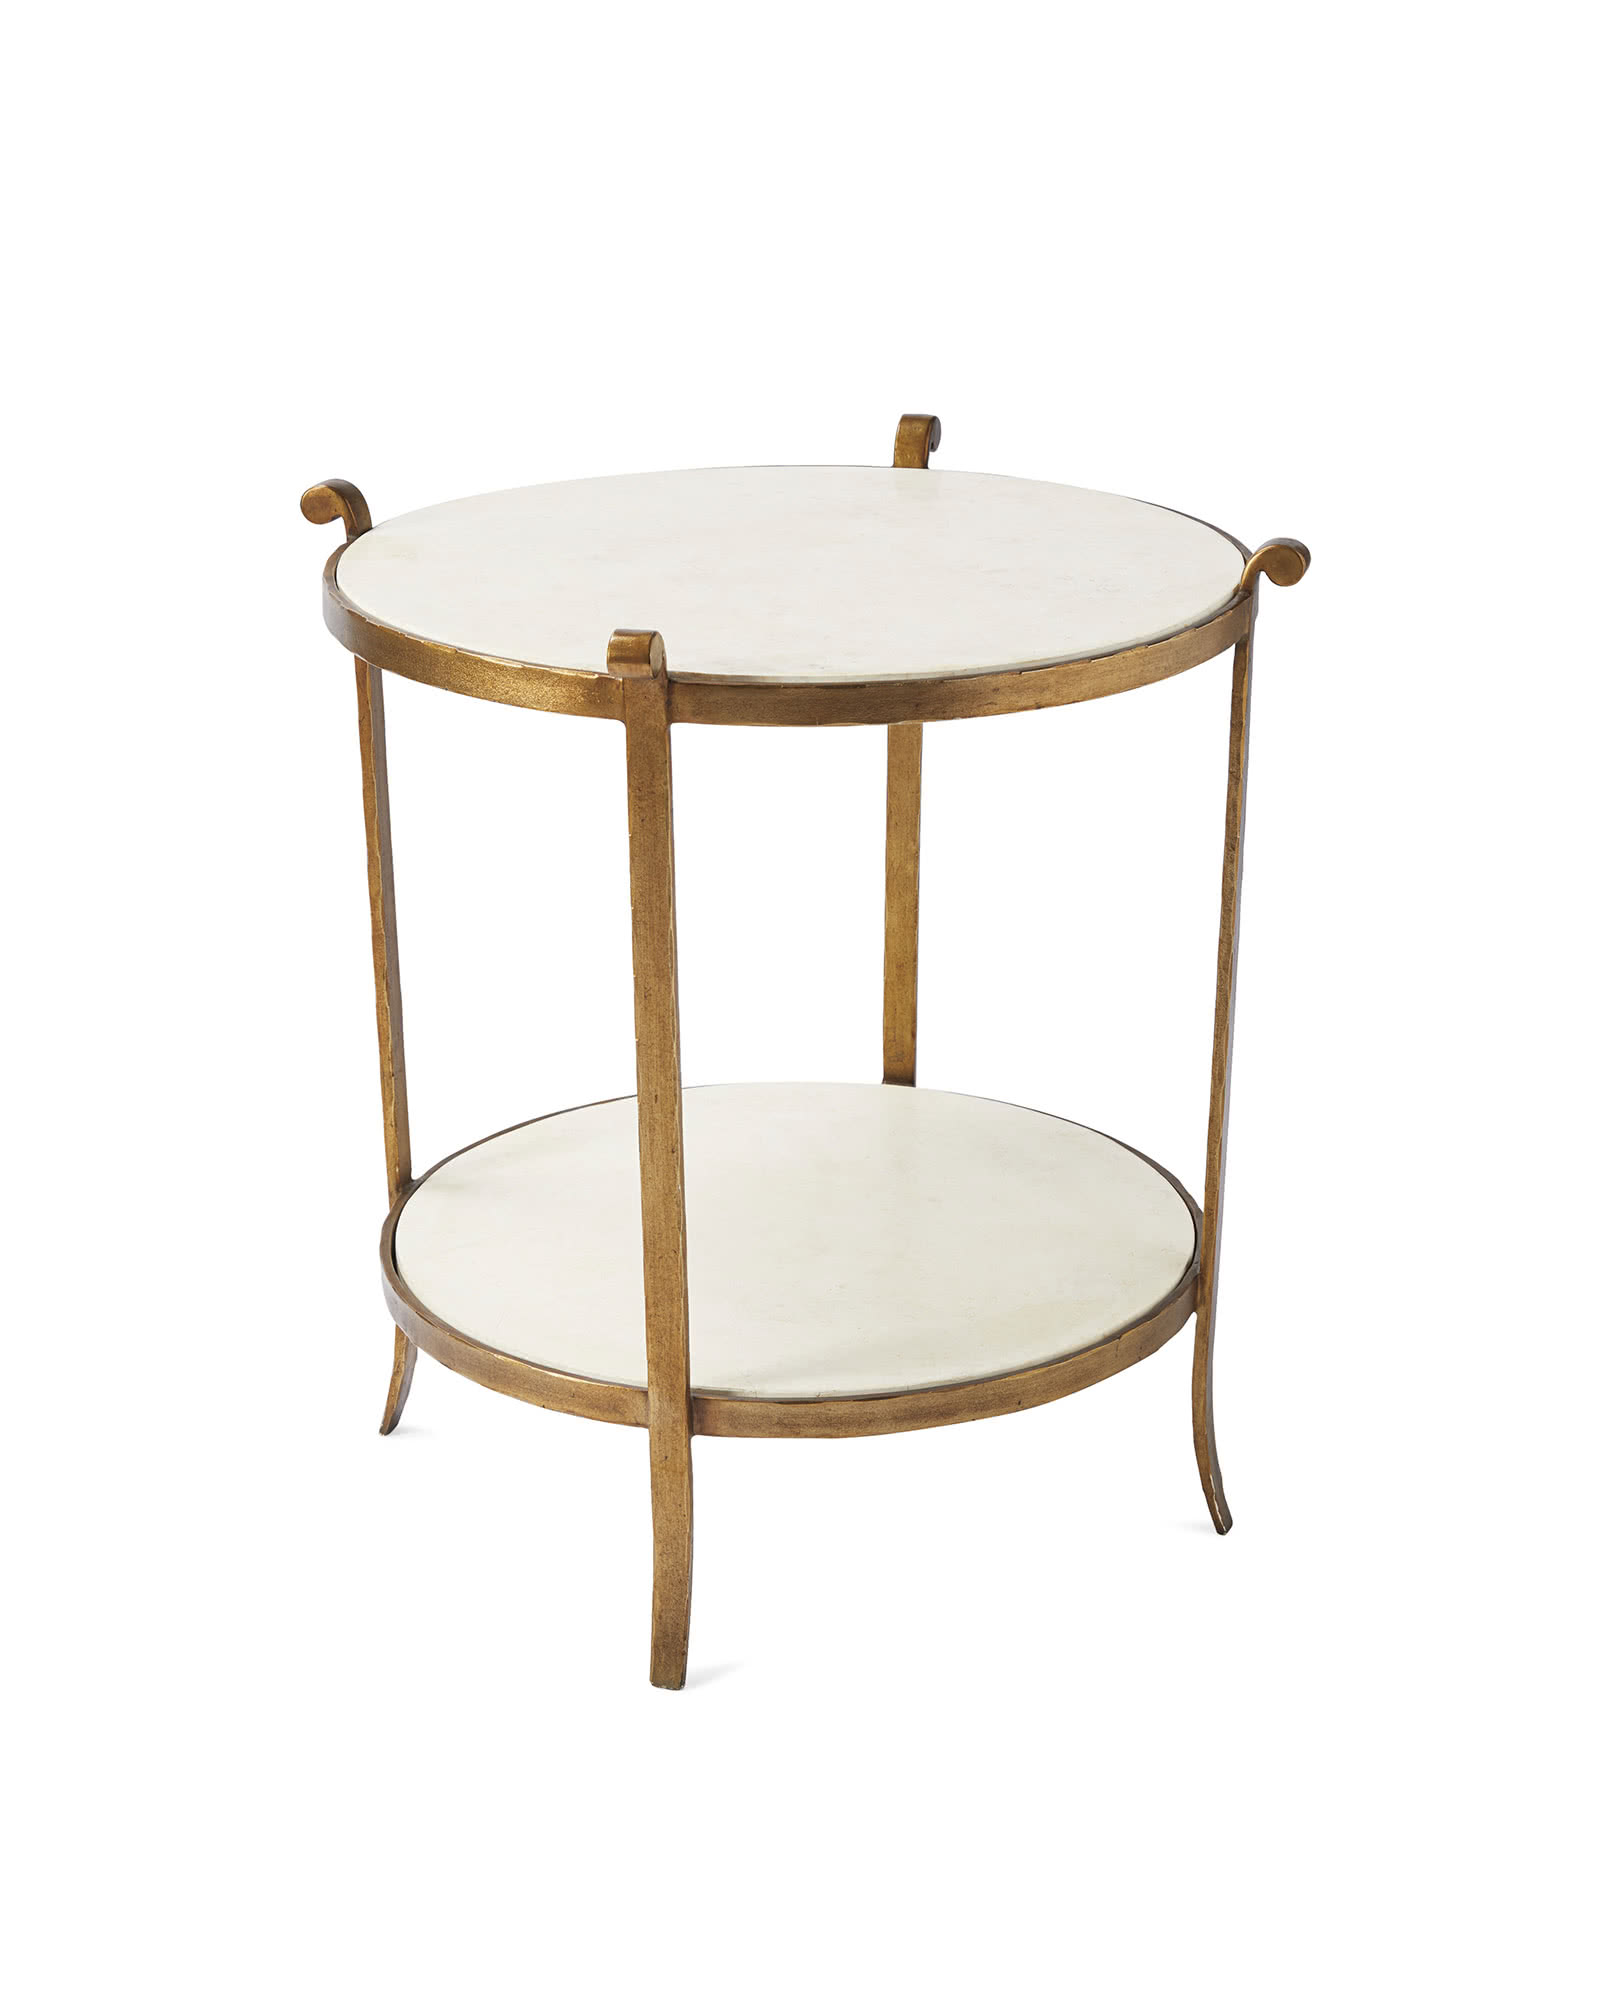 St. Germain Stone Side Table,